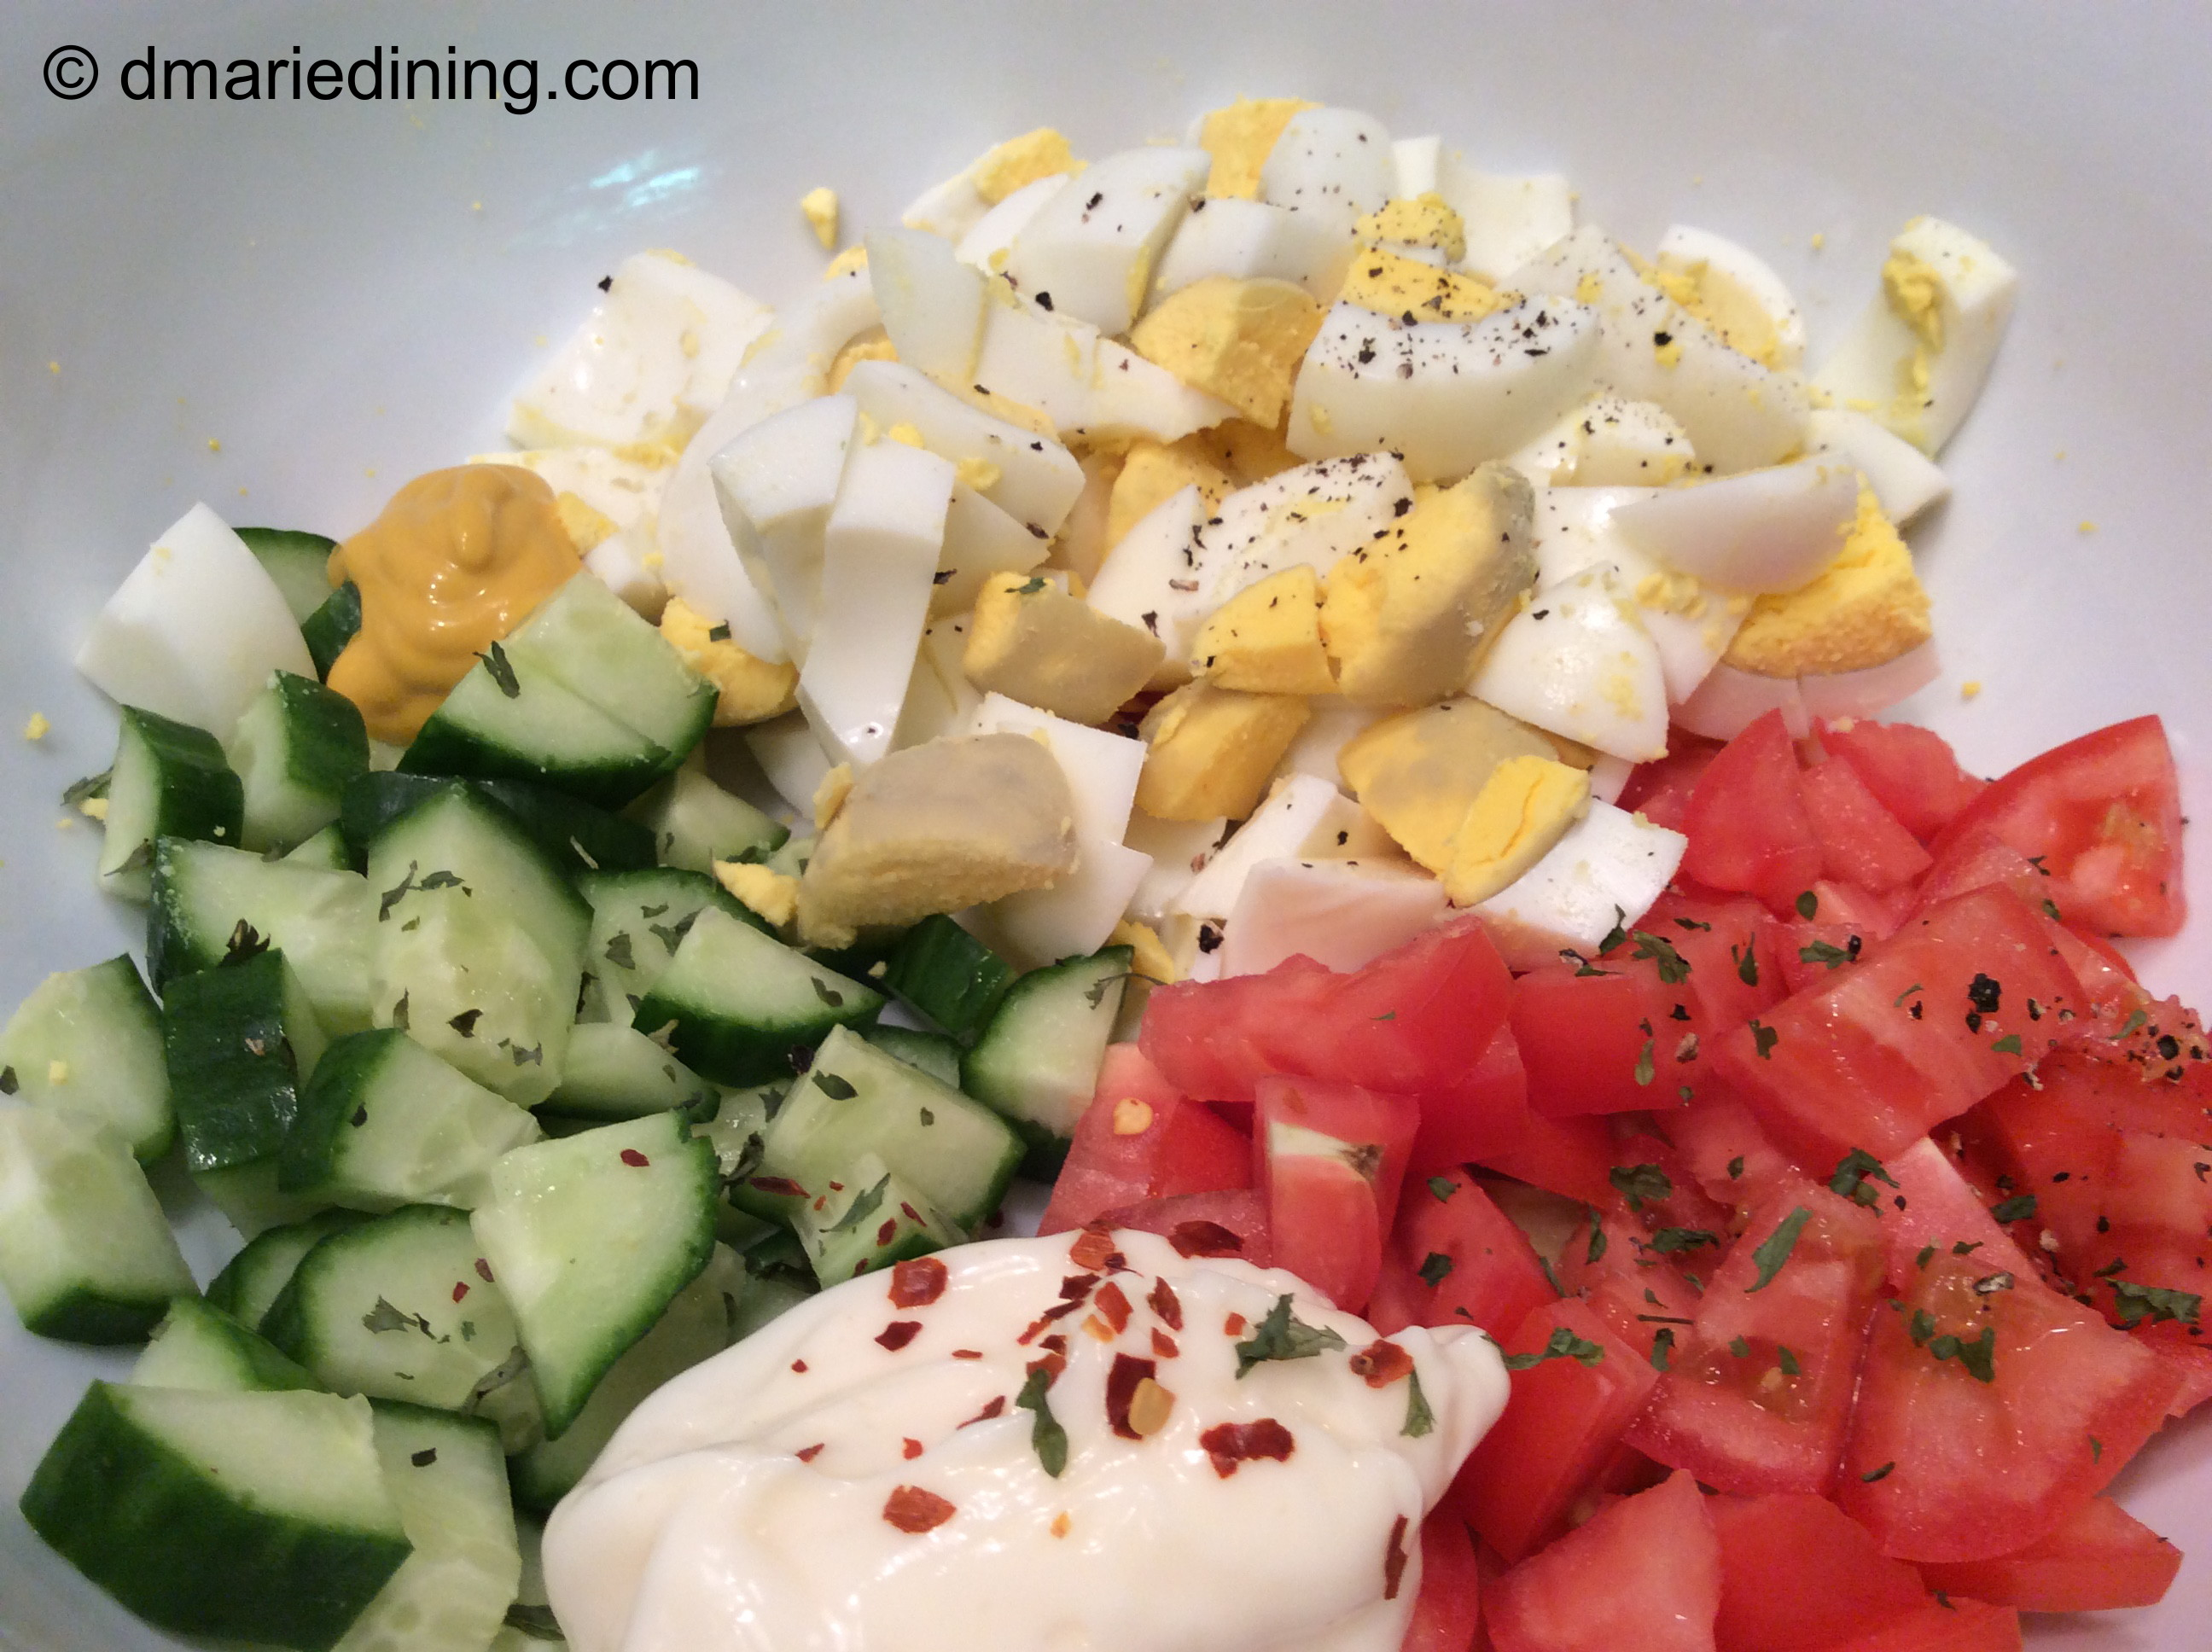 Basic Egg Salads Are Pale Yellow And White With Sprinkles Of Dull Green Sweet Relish Me I Left Out The Relish And Added A Vibrant Green By Putting Diced